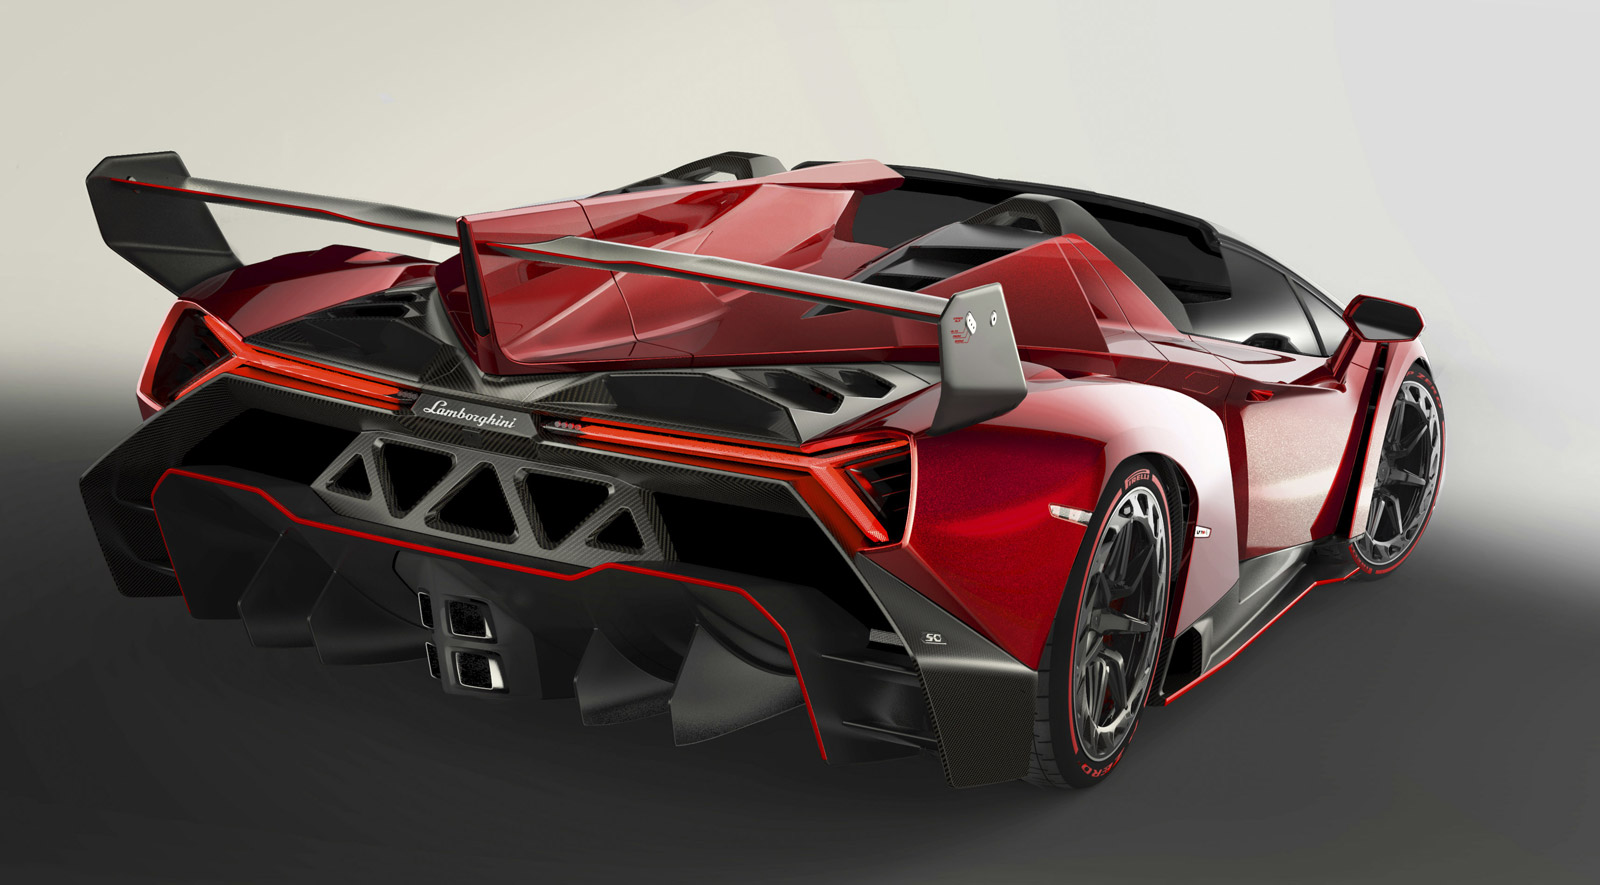 2018 lamborghini veneno roadster.  lamborghini 2015 ford mustang nissan gtr lamborghini veneno roadster this week in  social media throughout 2018 lamborghini veneno roadster e